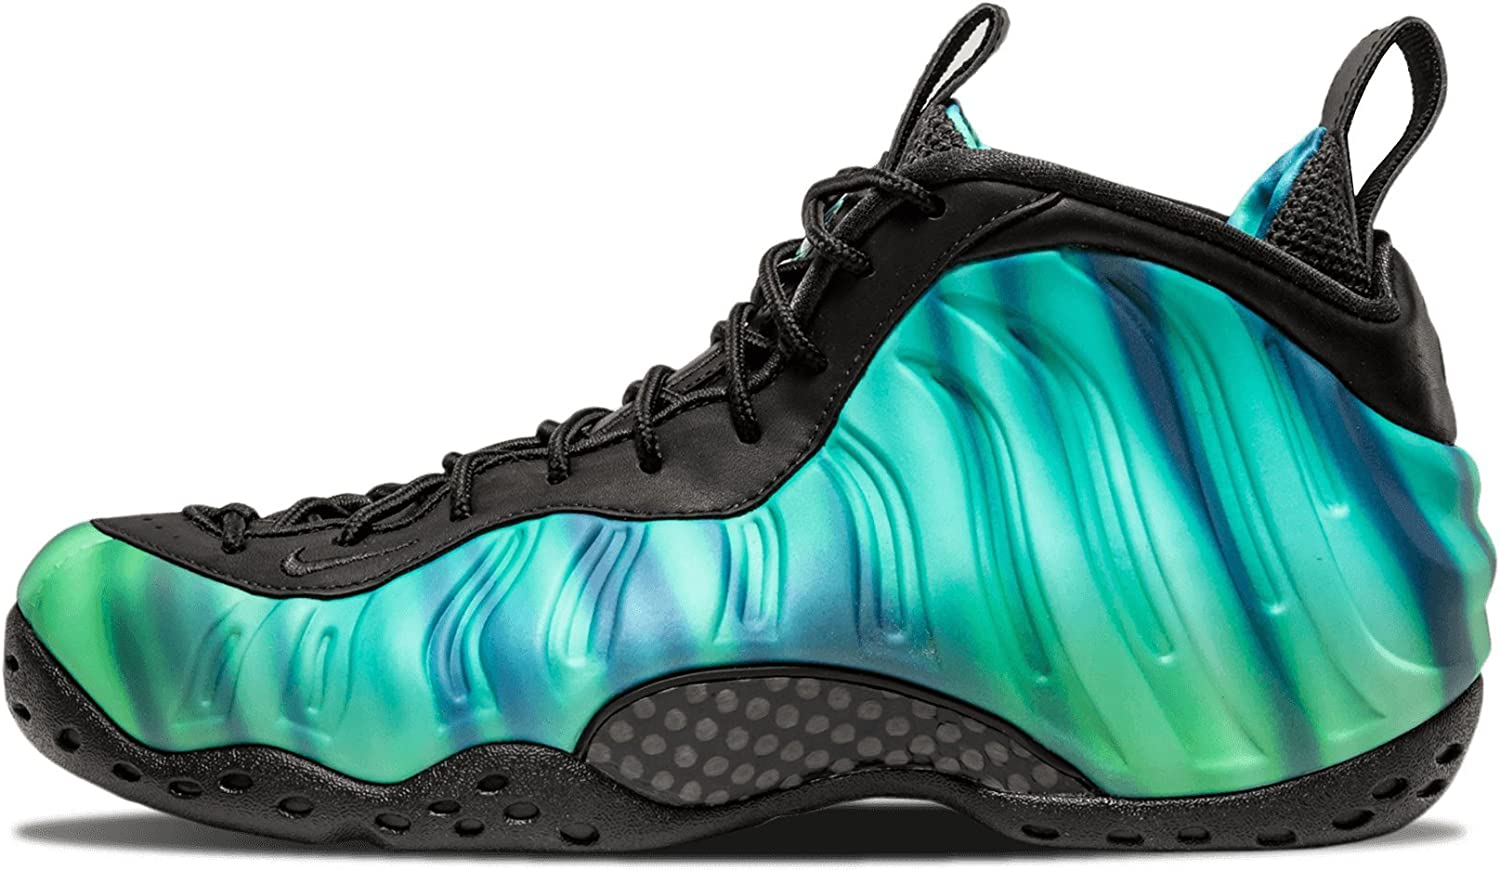 CONCORD NIKE AIR FOAMPOSITE ONEYouTube